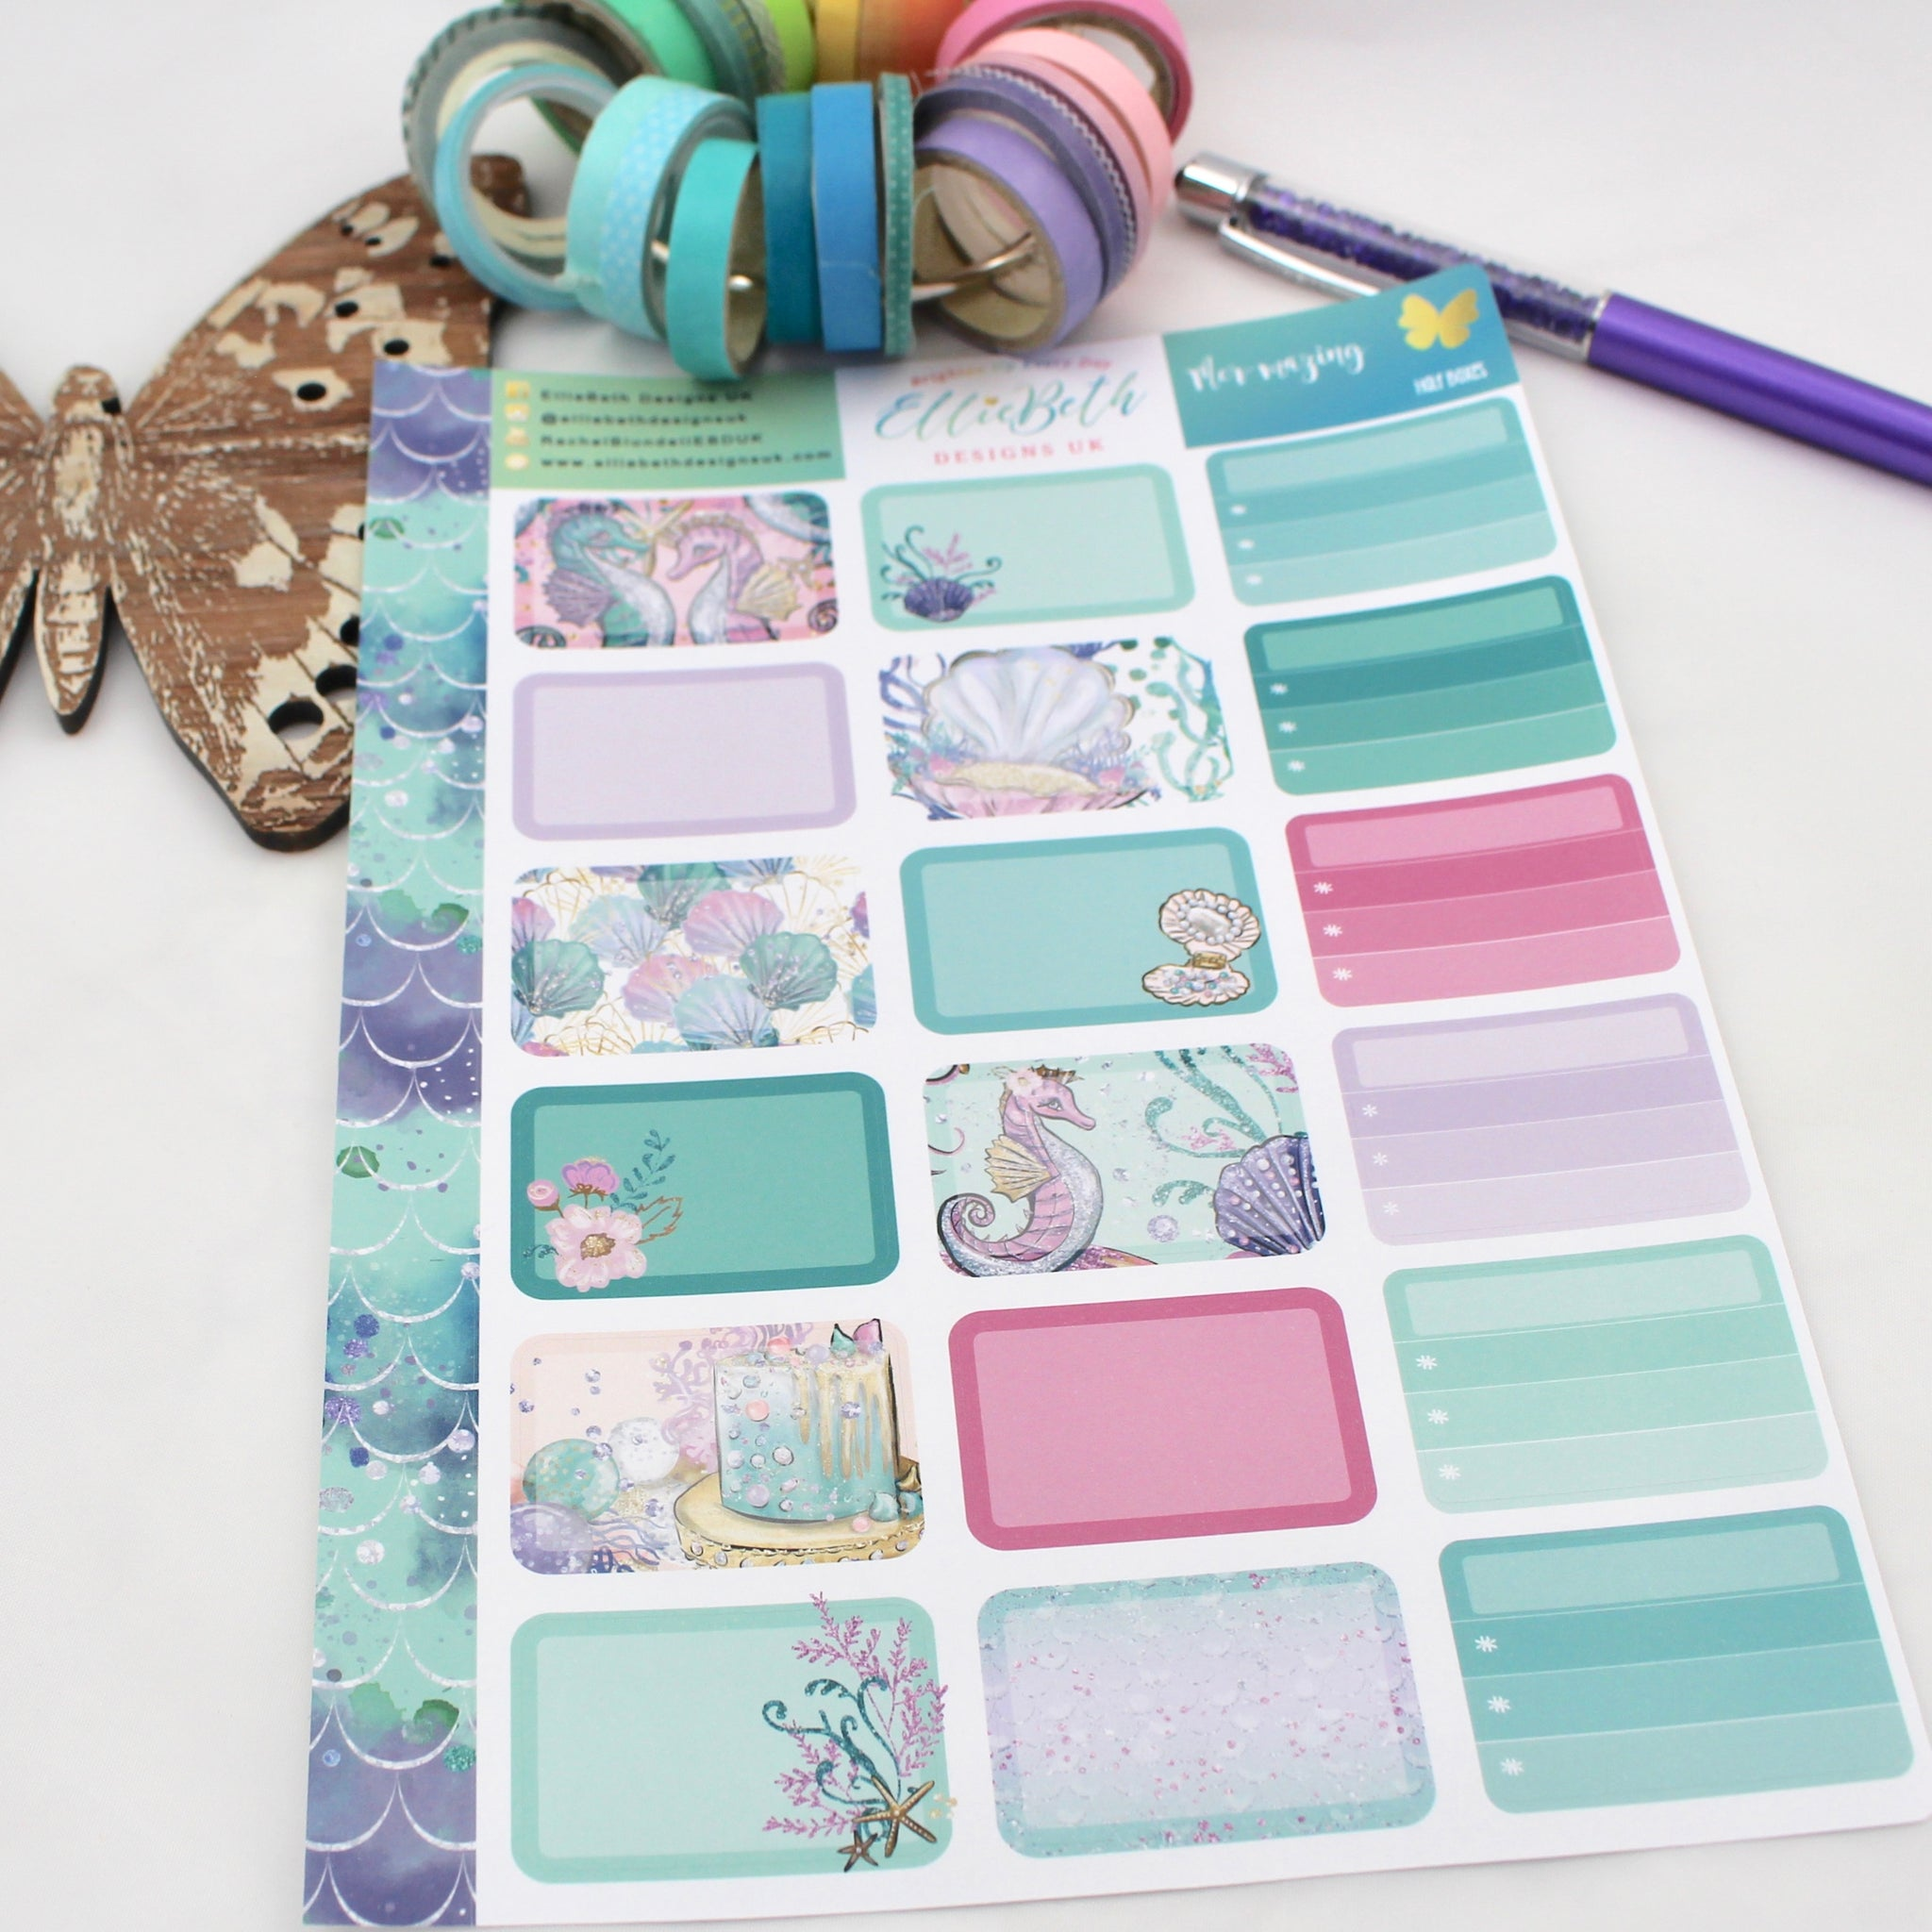 Mer-mazing - Half Boxes -  A5 binder ready planner stickers